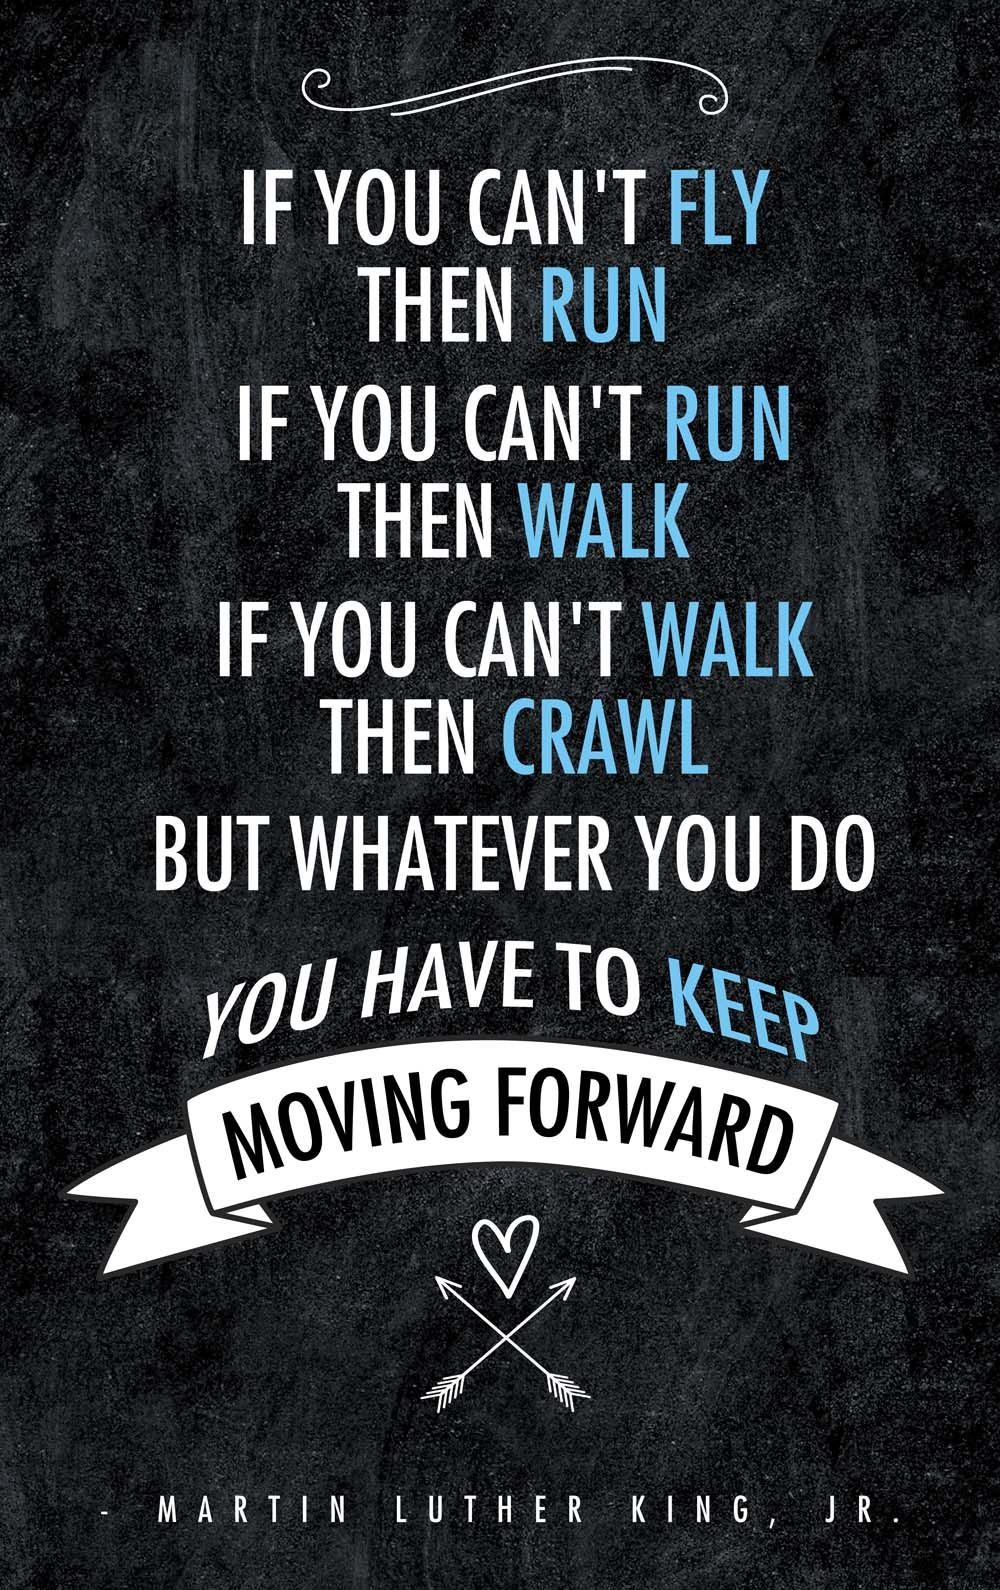 Keep Moving Forward Quote Keep Moving Forward #quote #martinlutherking  Inspiration Quotes